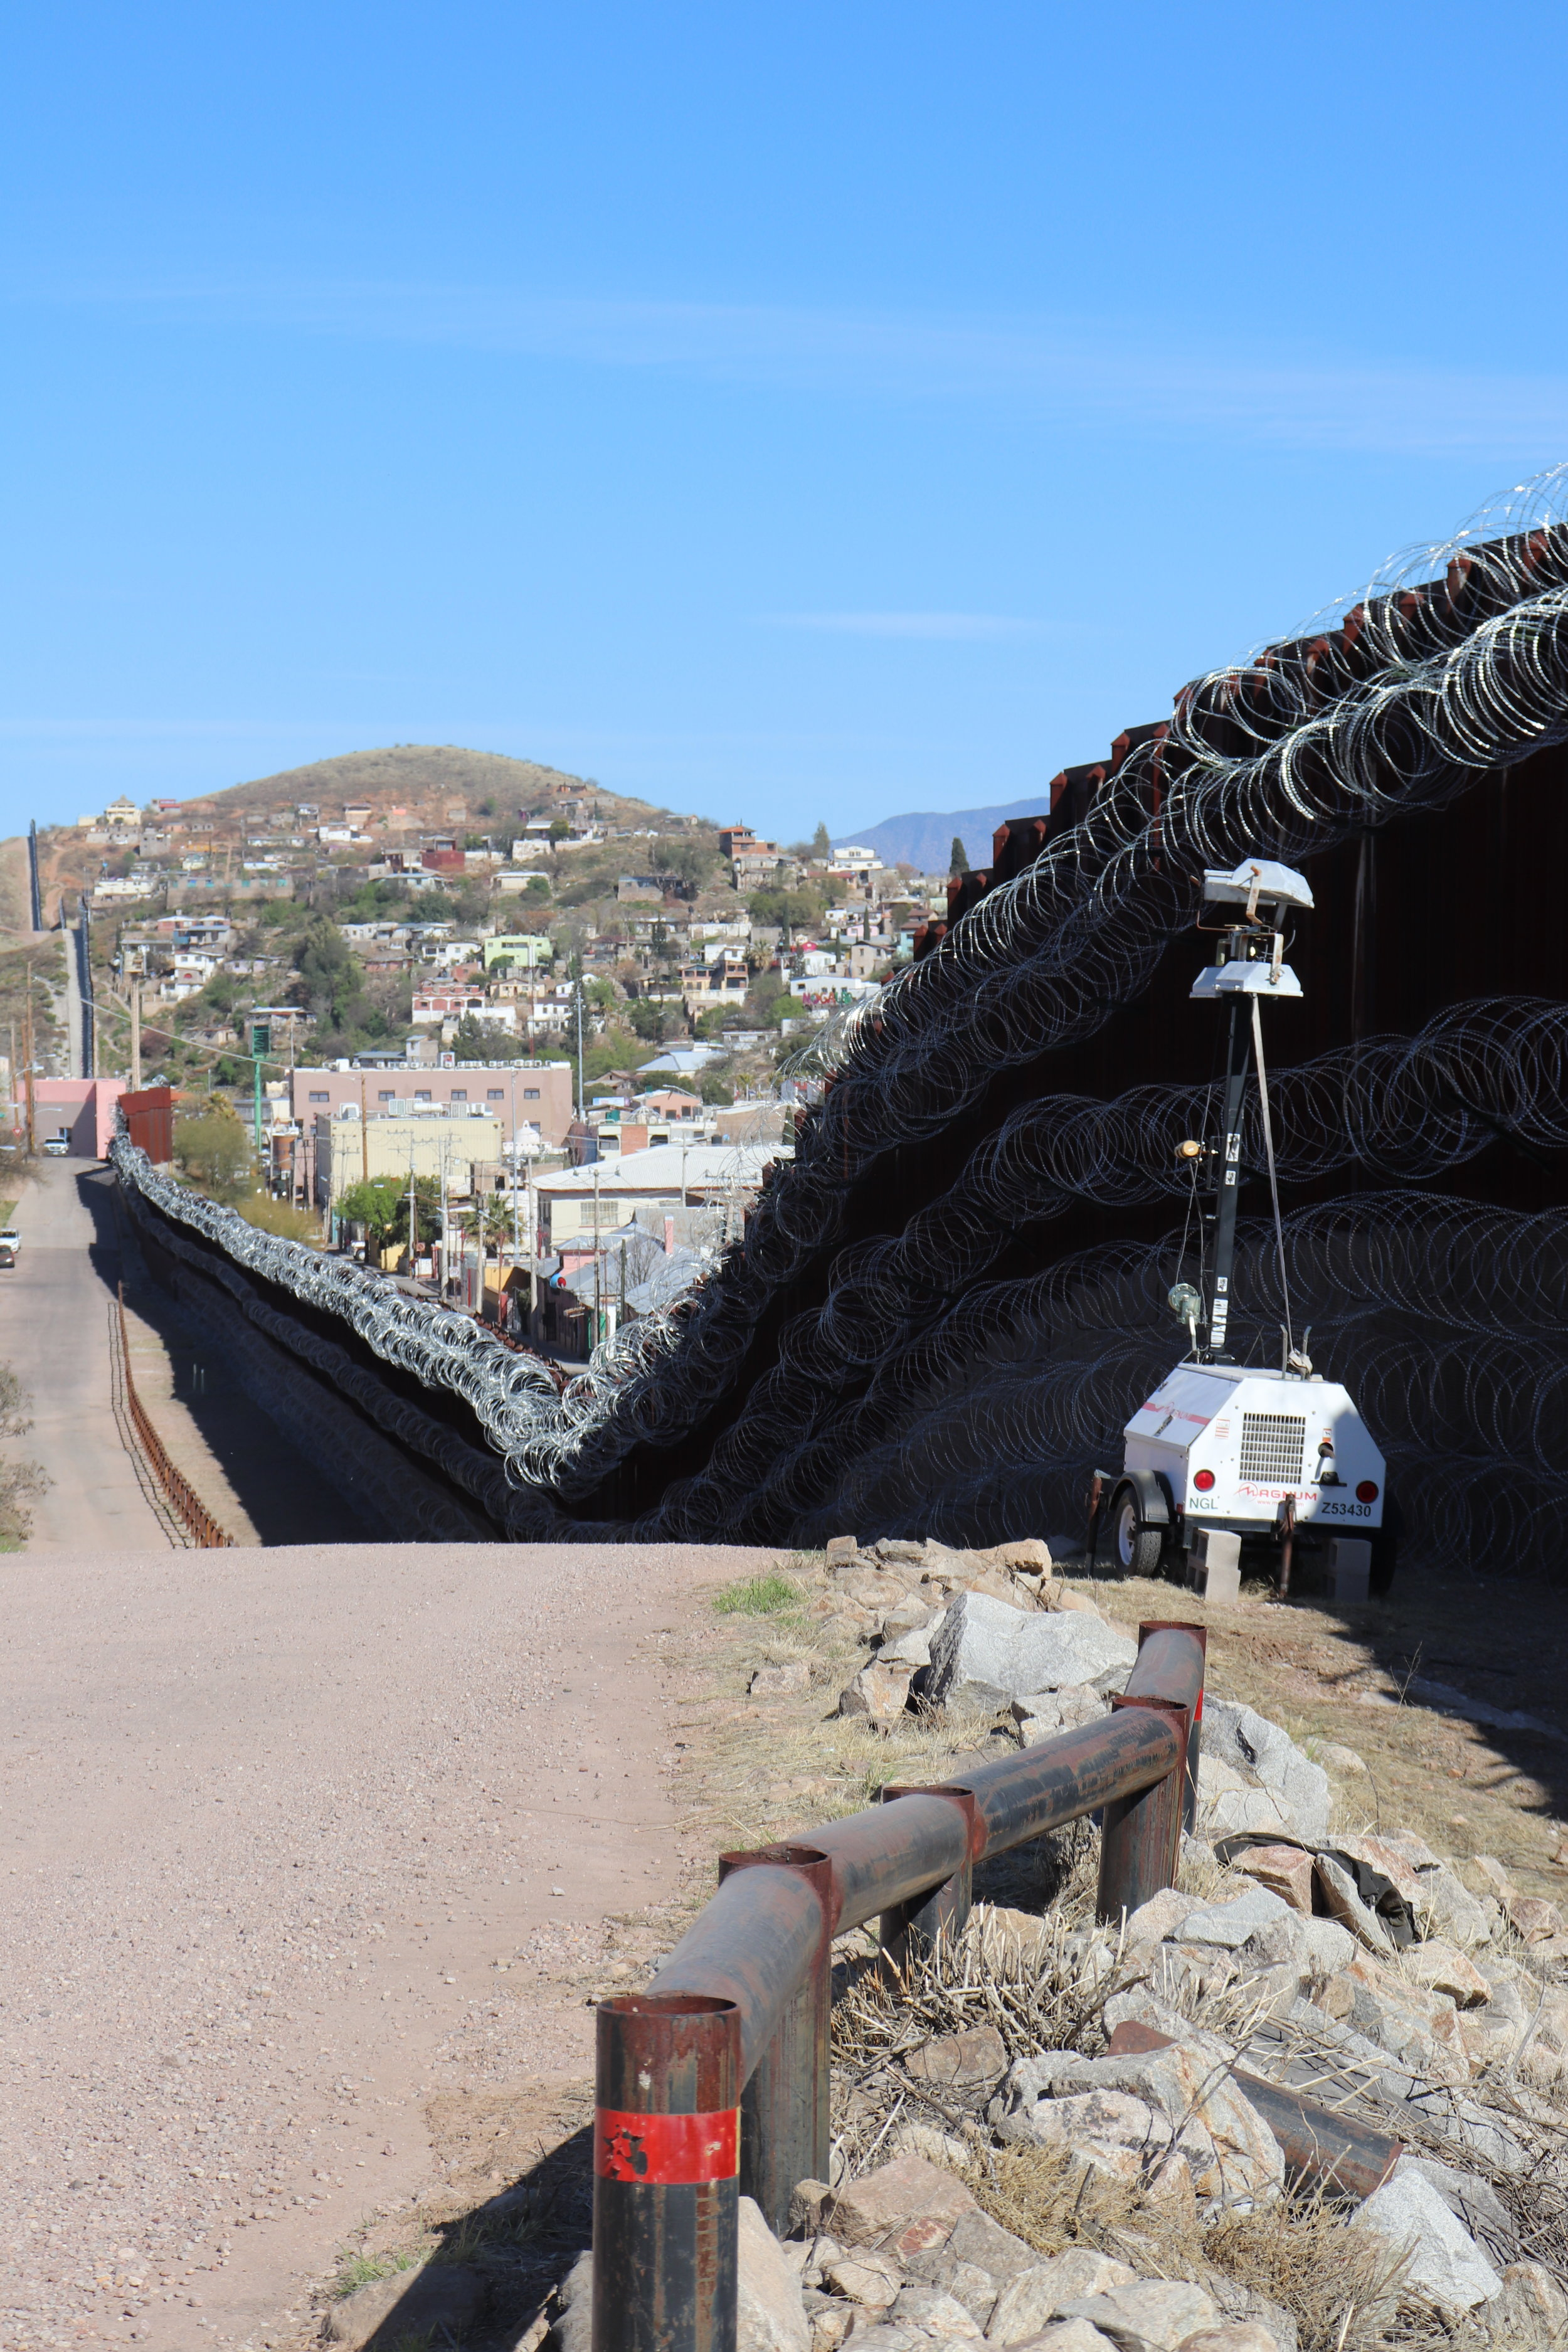 A view of the border wall from the American side. The wire has been added since the 2016 presidential election.